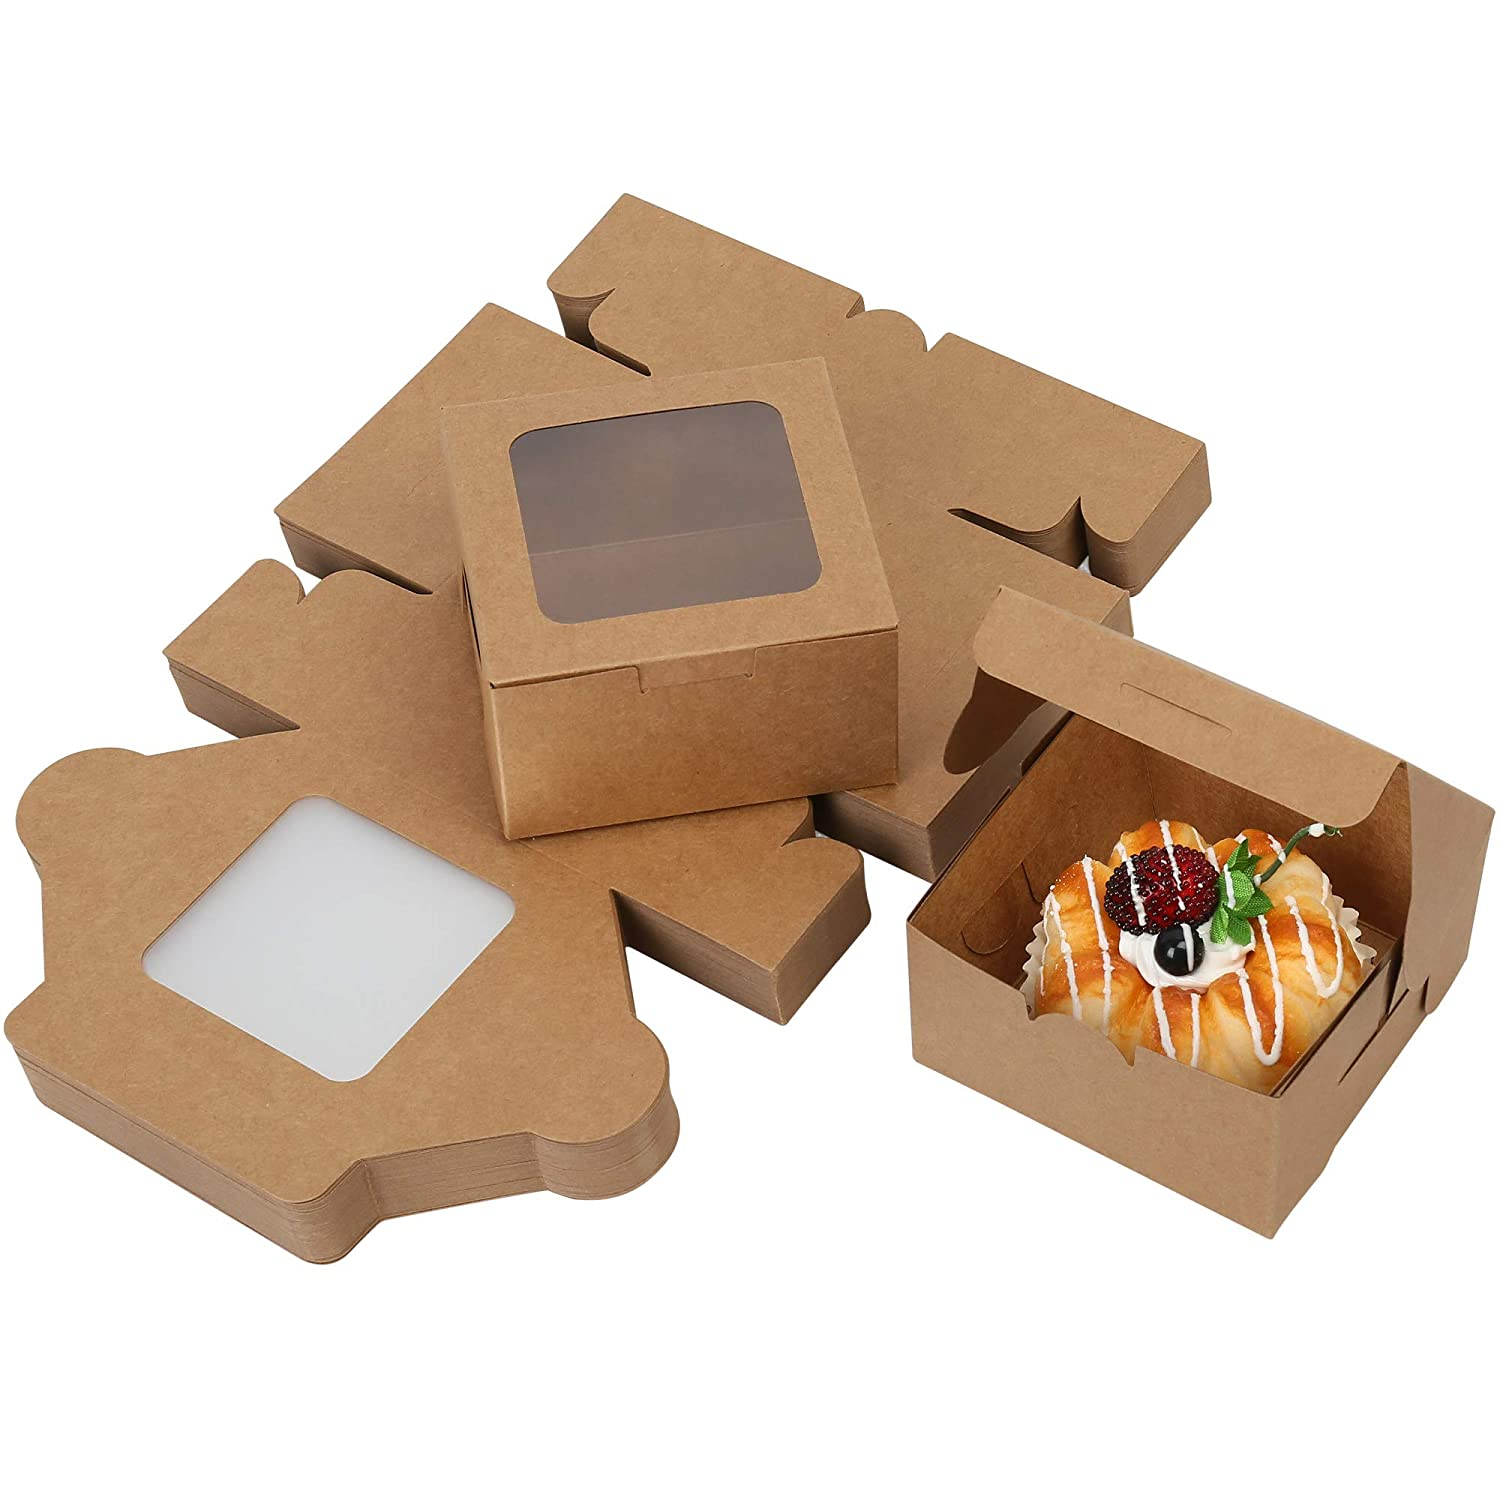 LotFancy 60 Pc Bakery Boxes with Window, 4x4x2.3 Inches Pastry Boxes for Cookies, Macarons, Chocolates and Baked Goods, Small Treat Boxes for Holidays, Parties, Birthday Gift Giving, Brown Kraft Paper